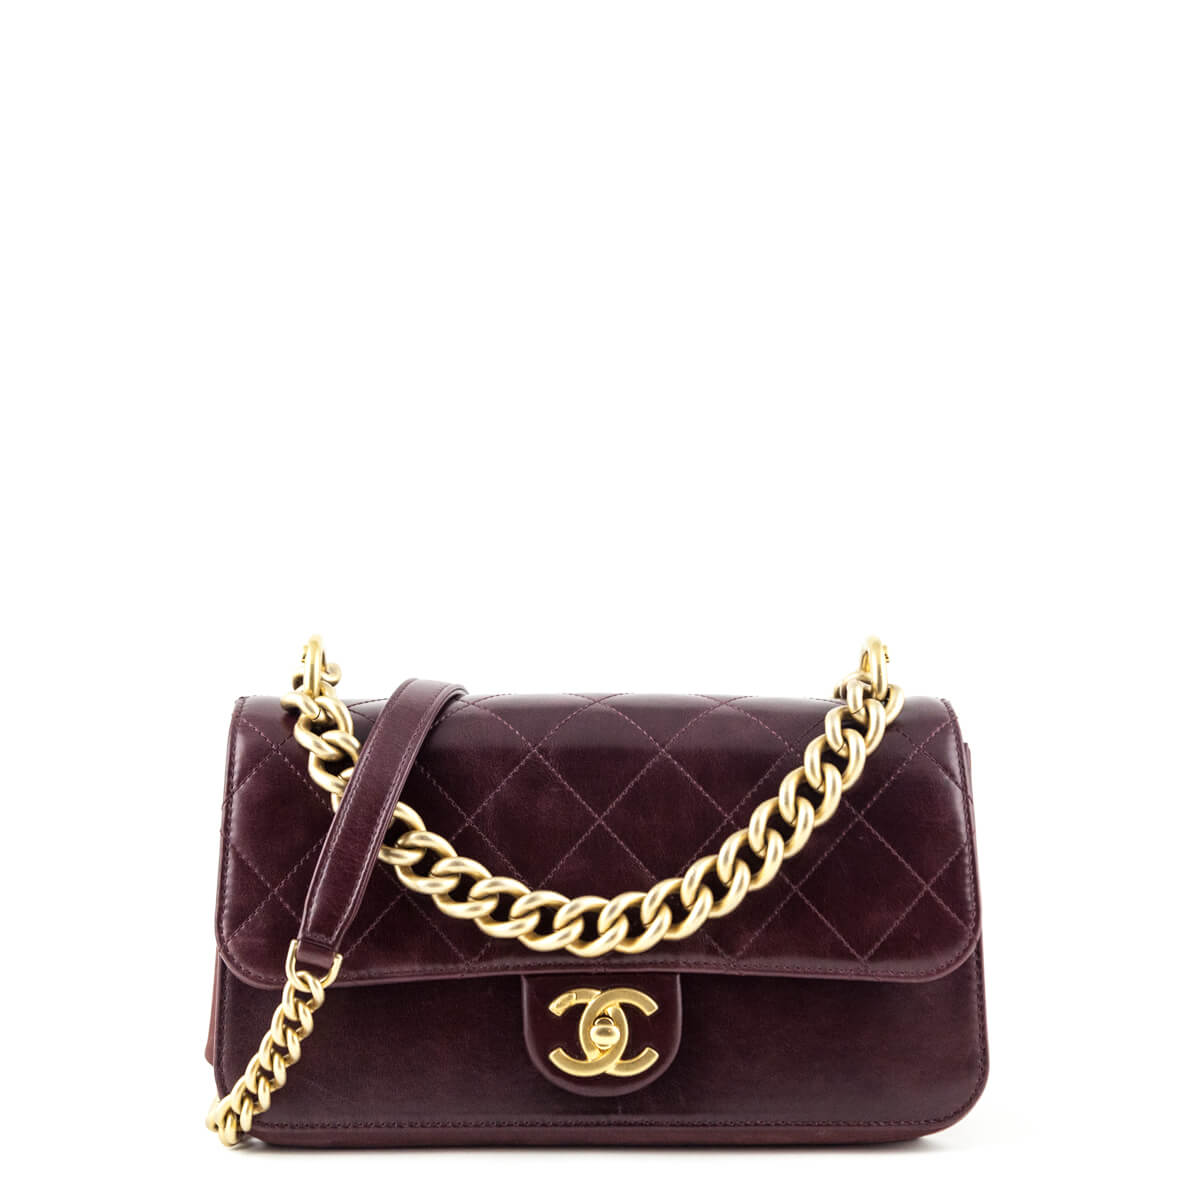 c44d31b90242 Chanel Wine Calfskin Small Straight-Lined Flap Bag - LOVE that BAG -  Preowned Authentic ...